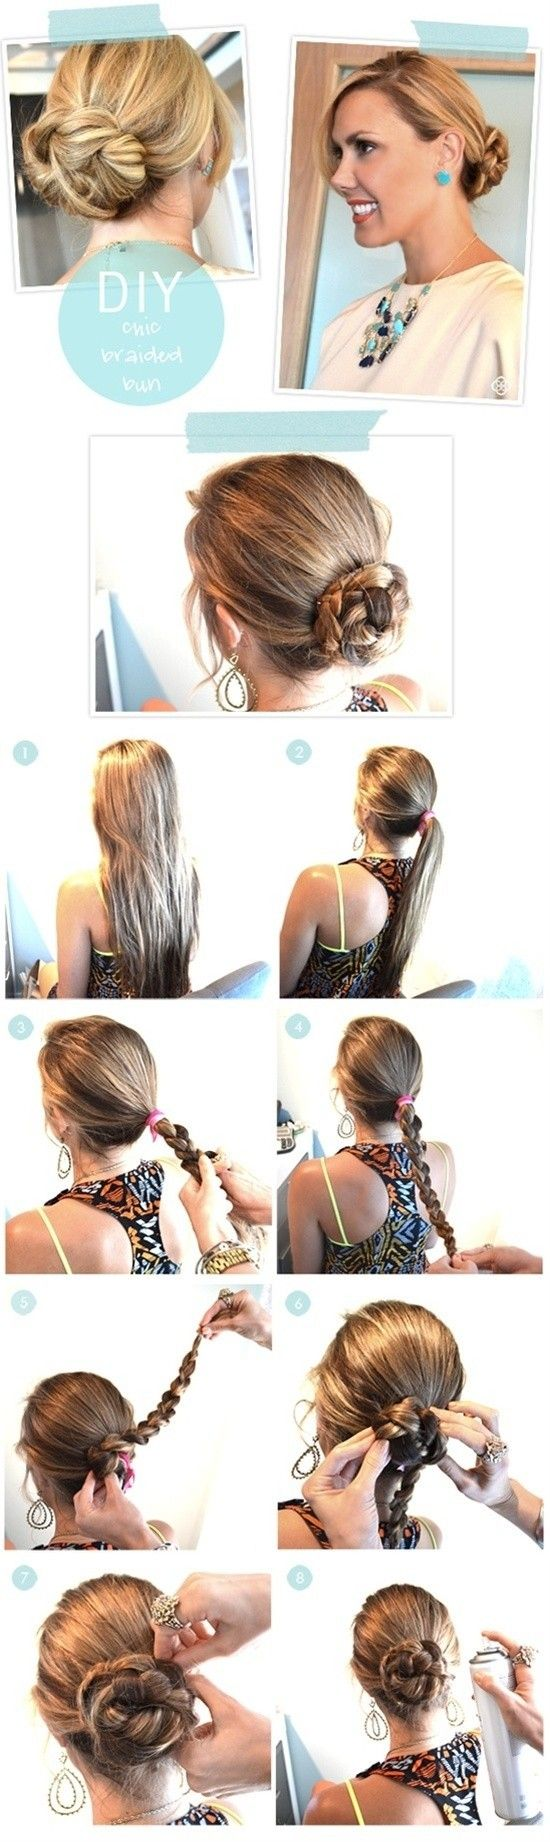 200 best Hair Styles ~ coiffure images on Pinterest | Hair makeup ...